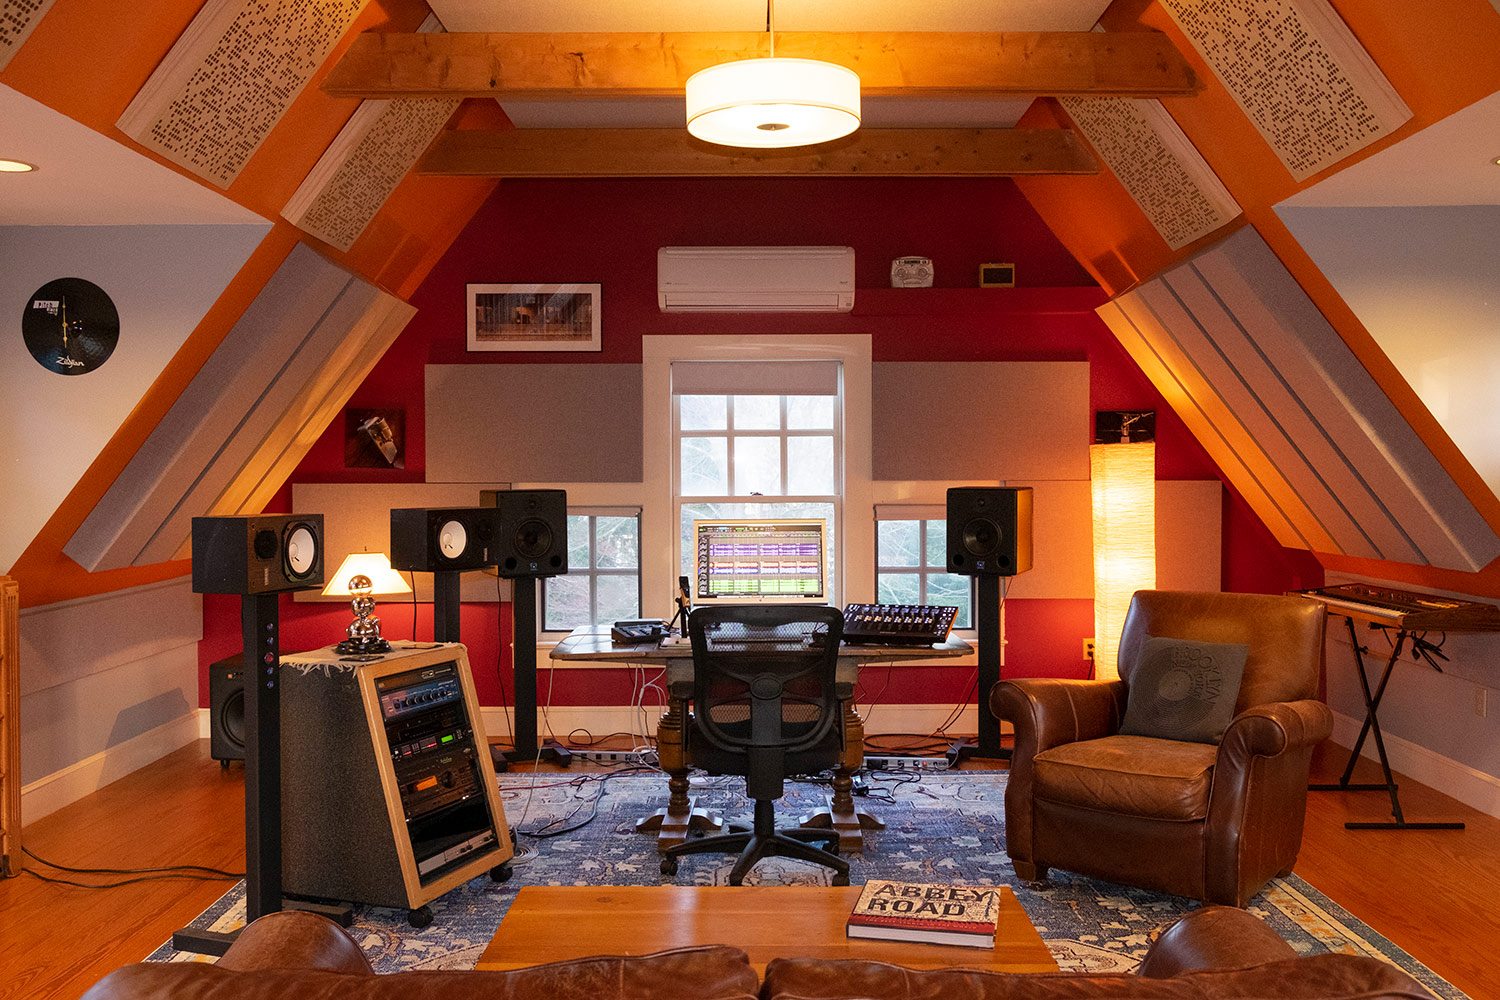 Rob Jaczko Abbott Road Studio, an all-in-one room with perfect internal room acoustics designed by WSDG and engaging the NIRO software. Close-up.